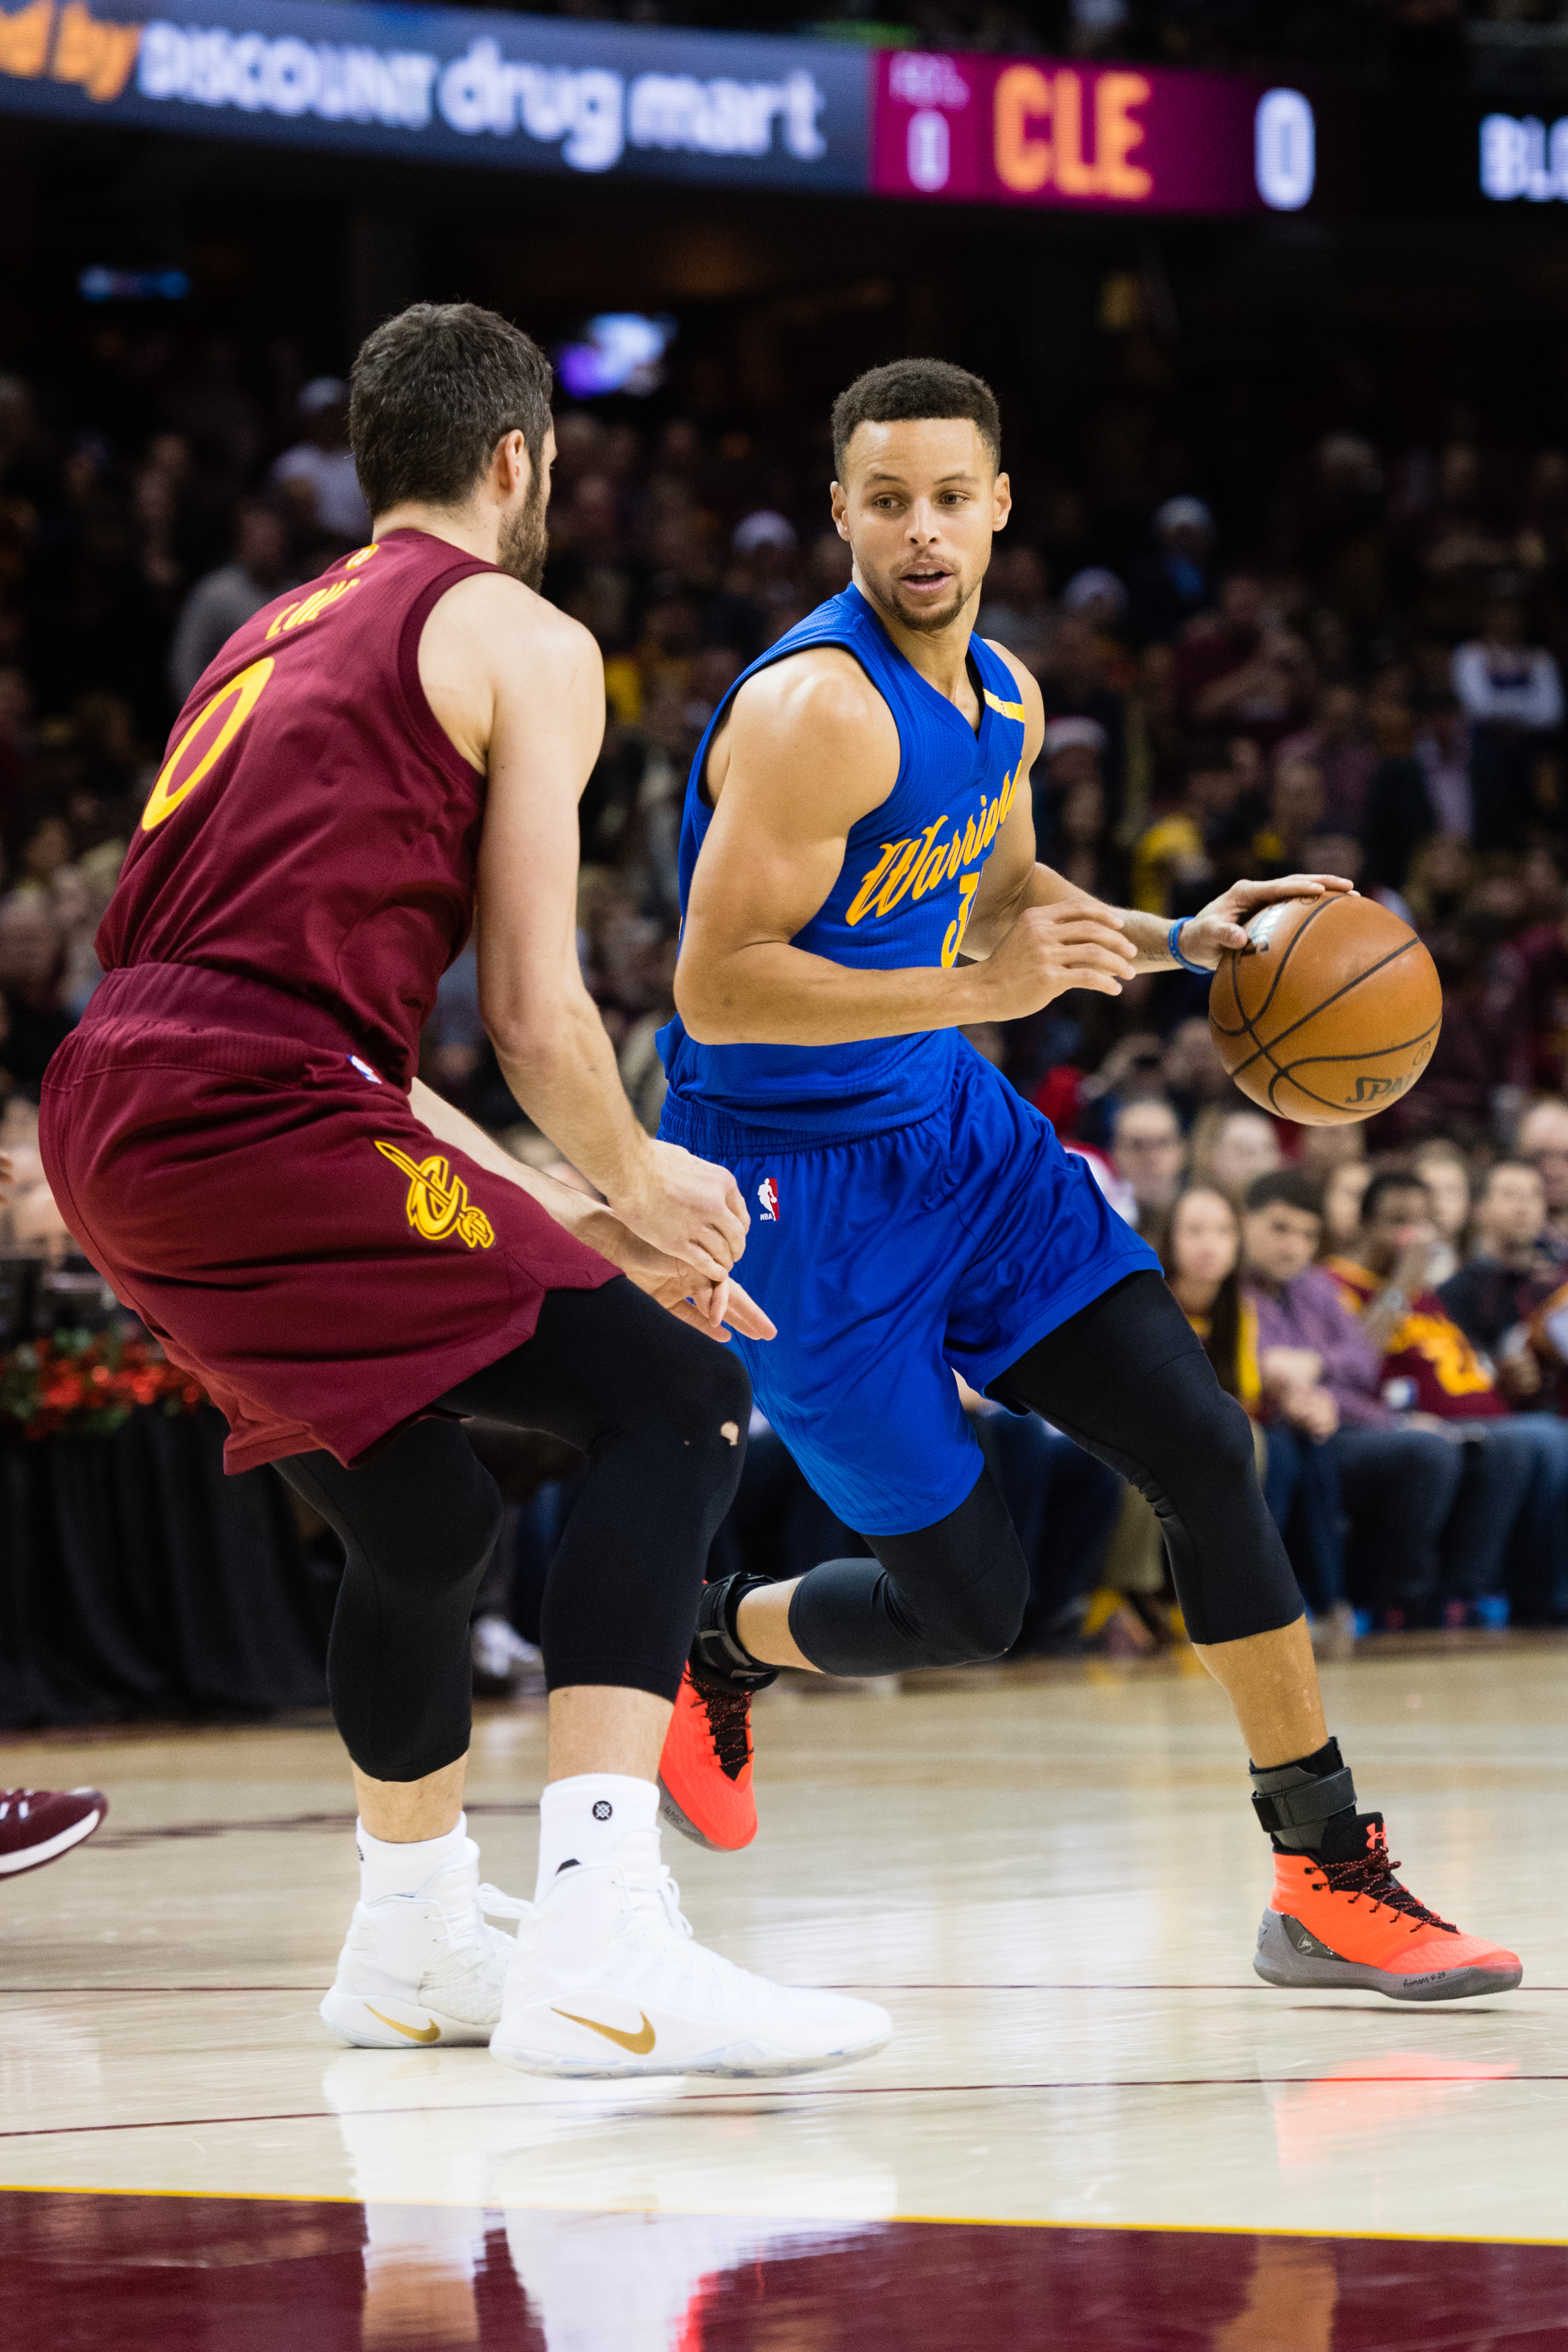 Warriors vs. Cavaliers rematch broke an NBA Christmas streaming record